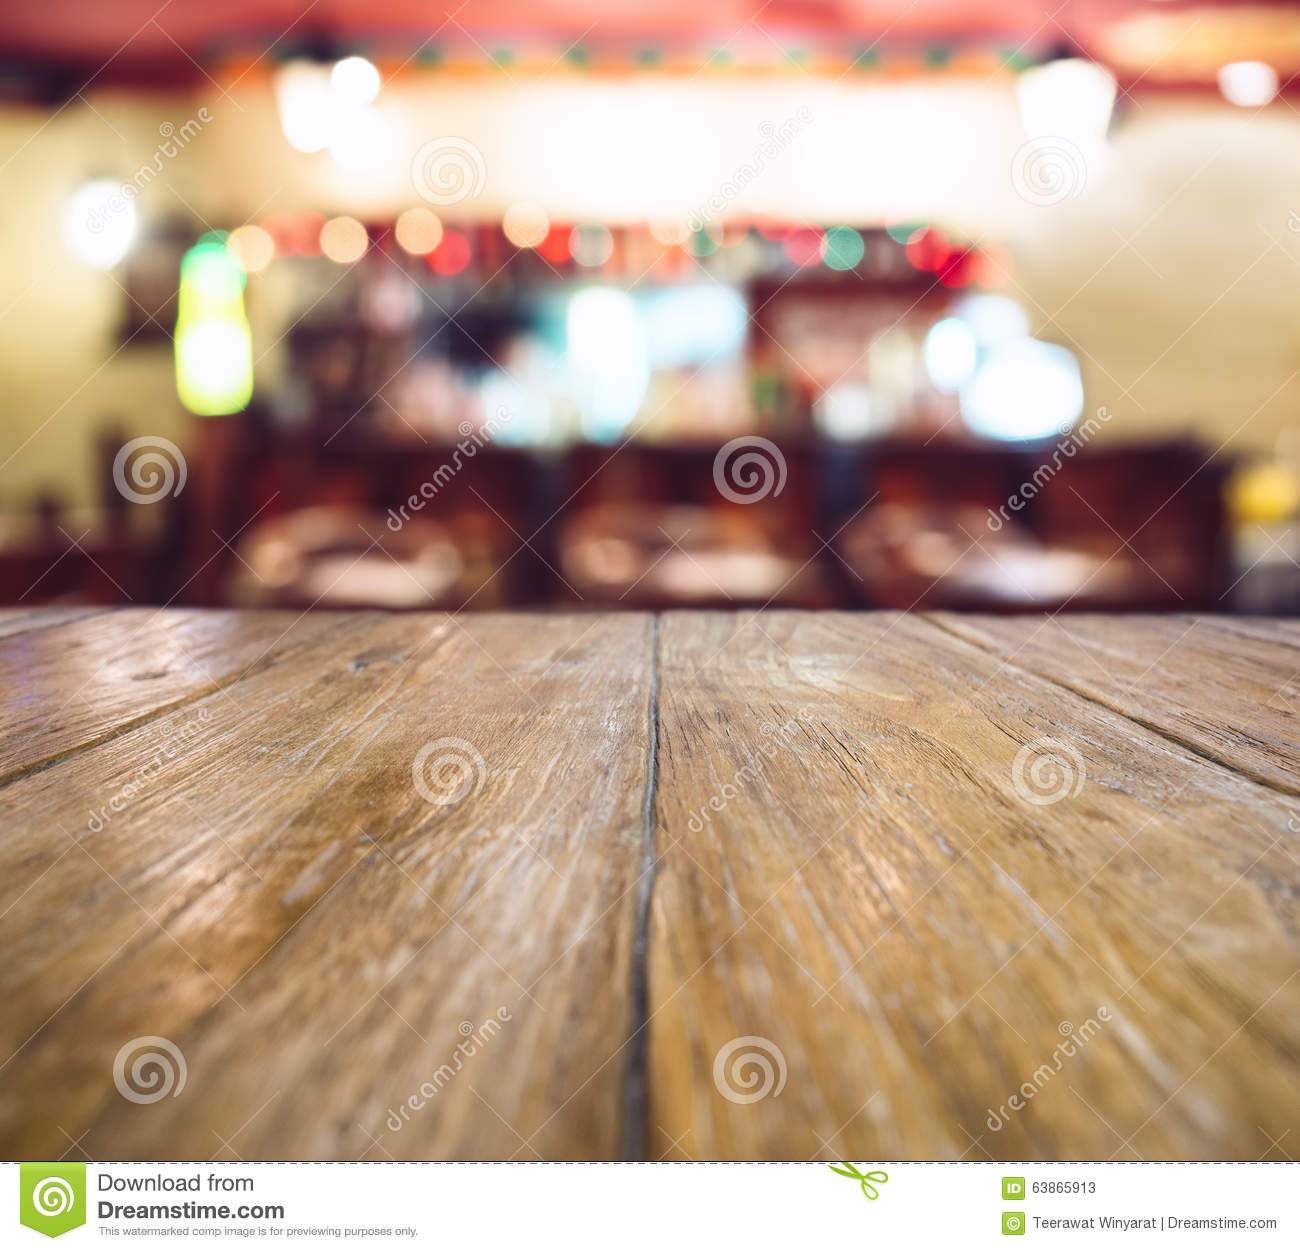 Kitchen Table Top Background table top counter blurred kitchen background stock photo - image